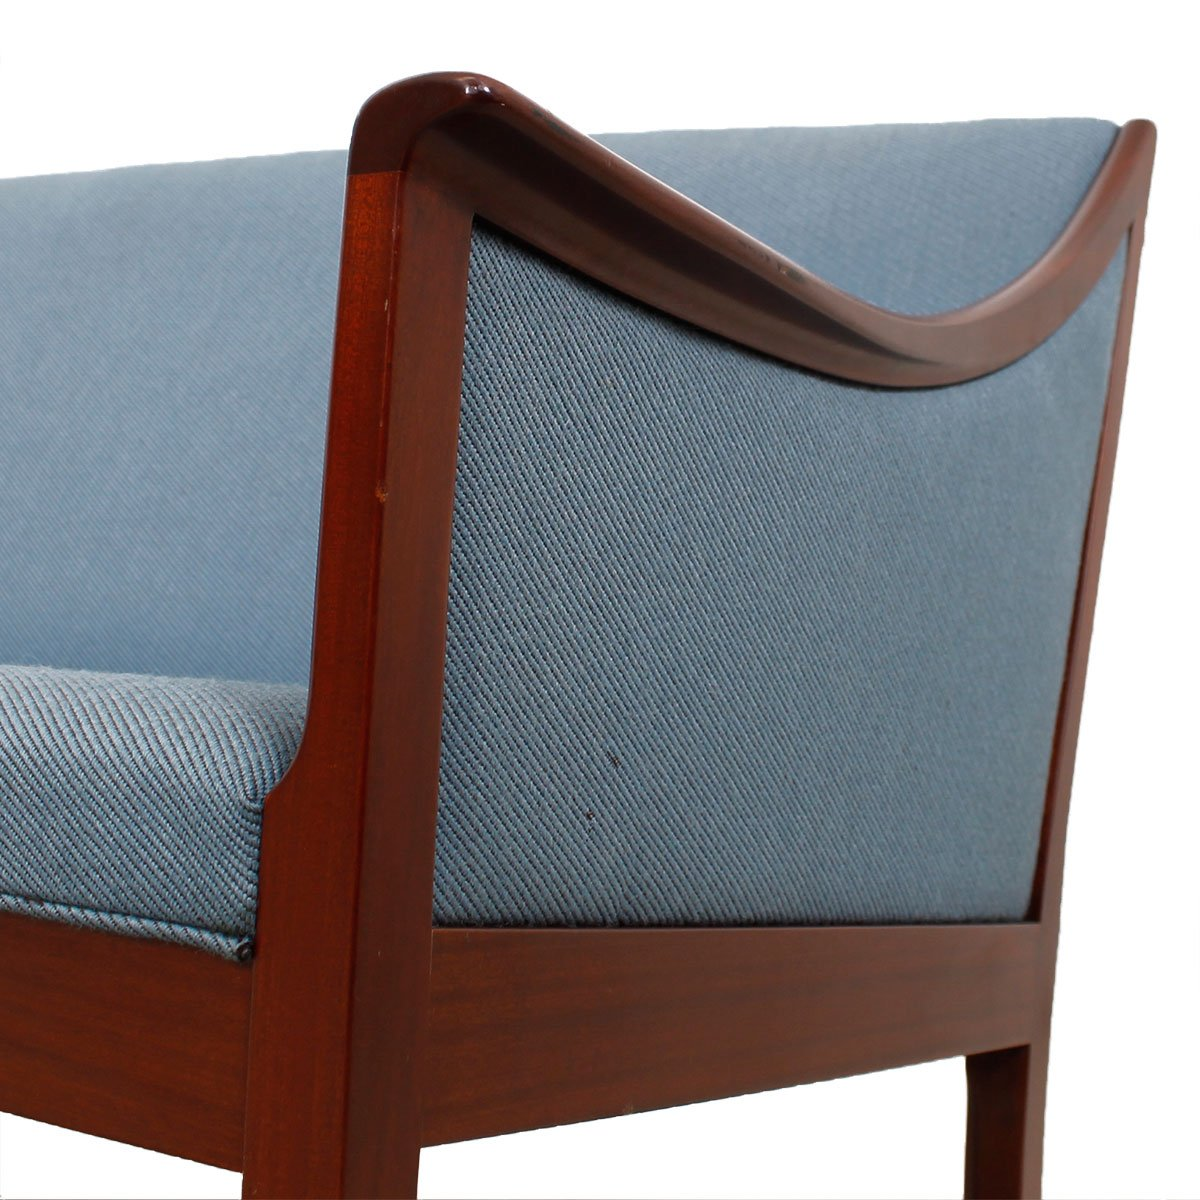 Danish Modern Rosewood Sofa & Pair of Chairs w. Blue Upholstery by Ole Wanscher